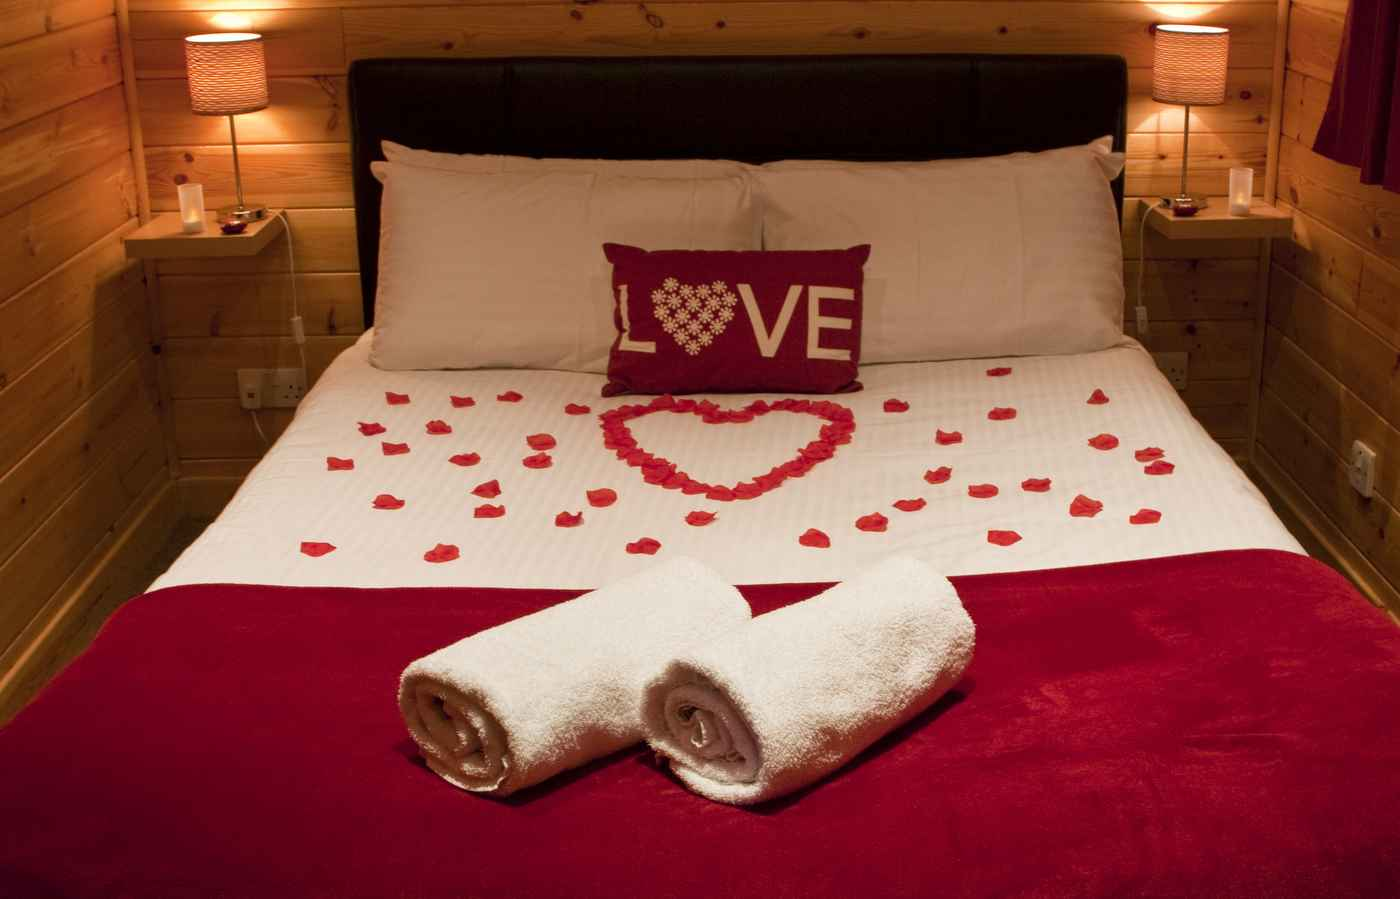 Romantic Bedrooms With Roses And Candles romantic bedrooms with roses and candles romantic bedroom ideas